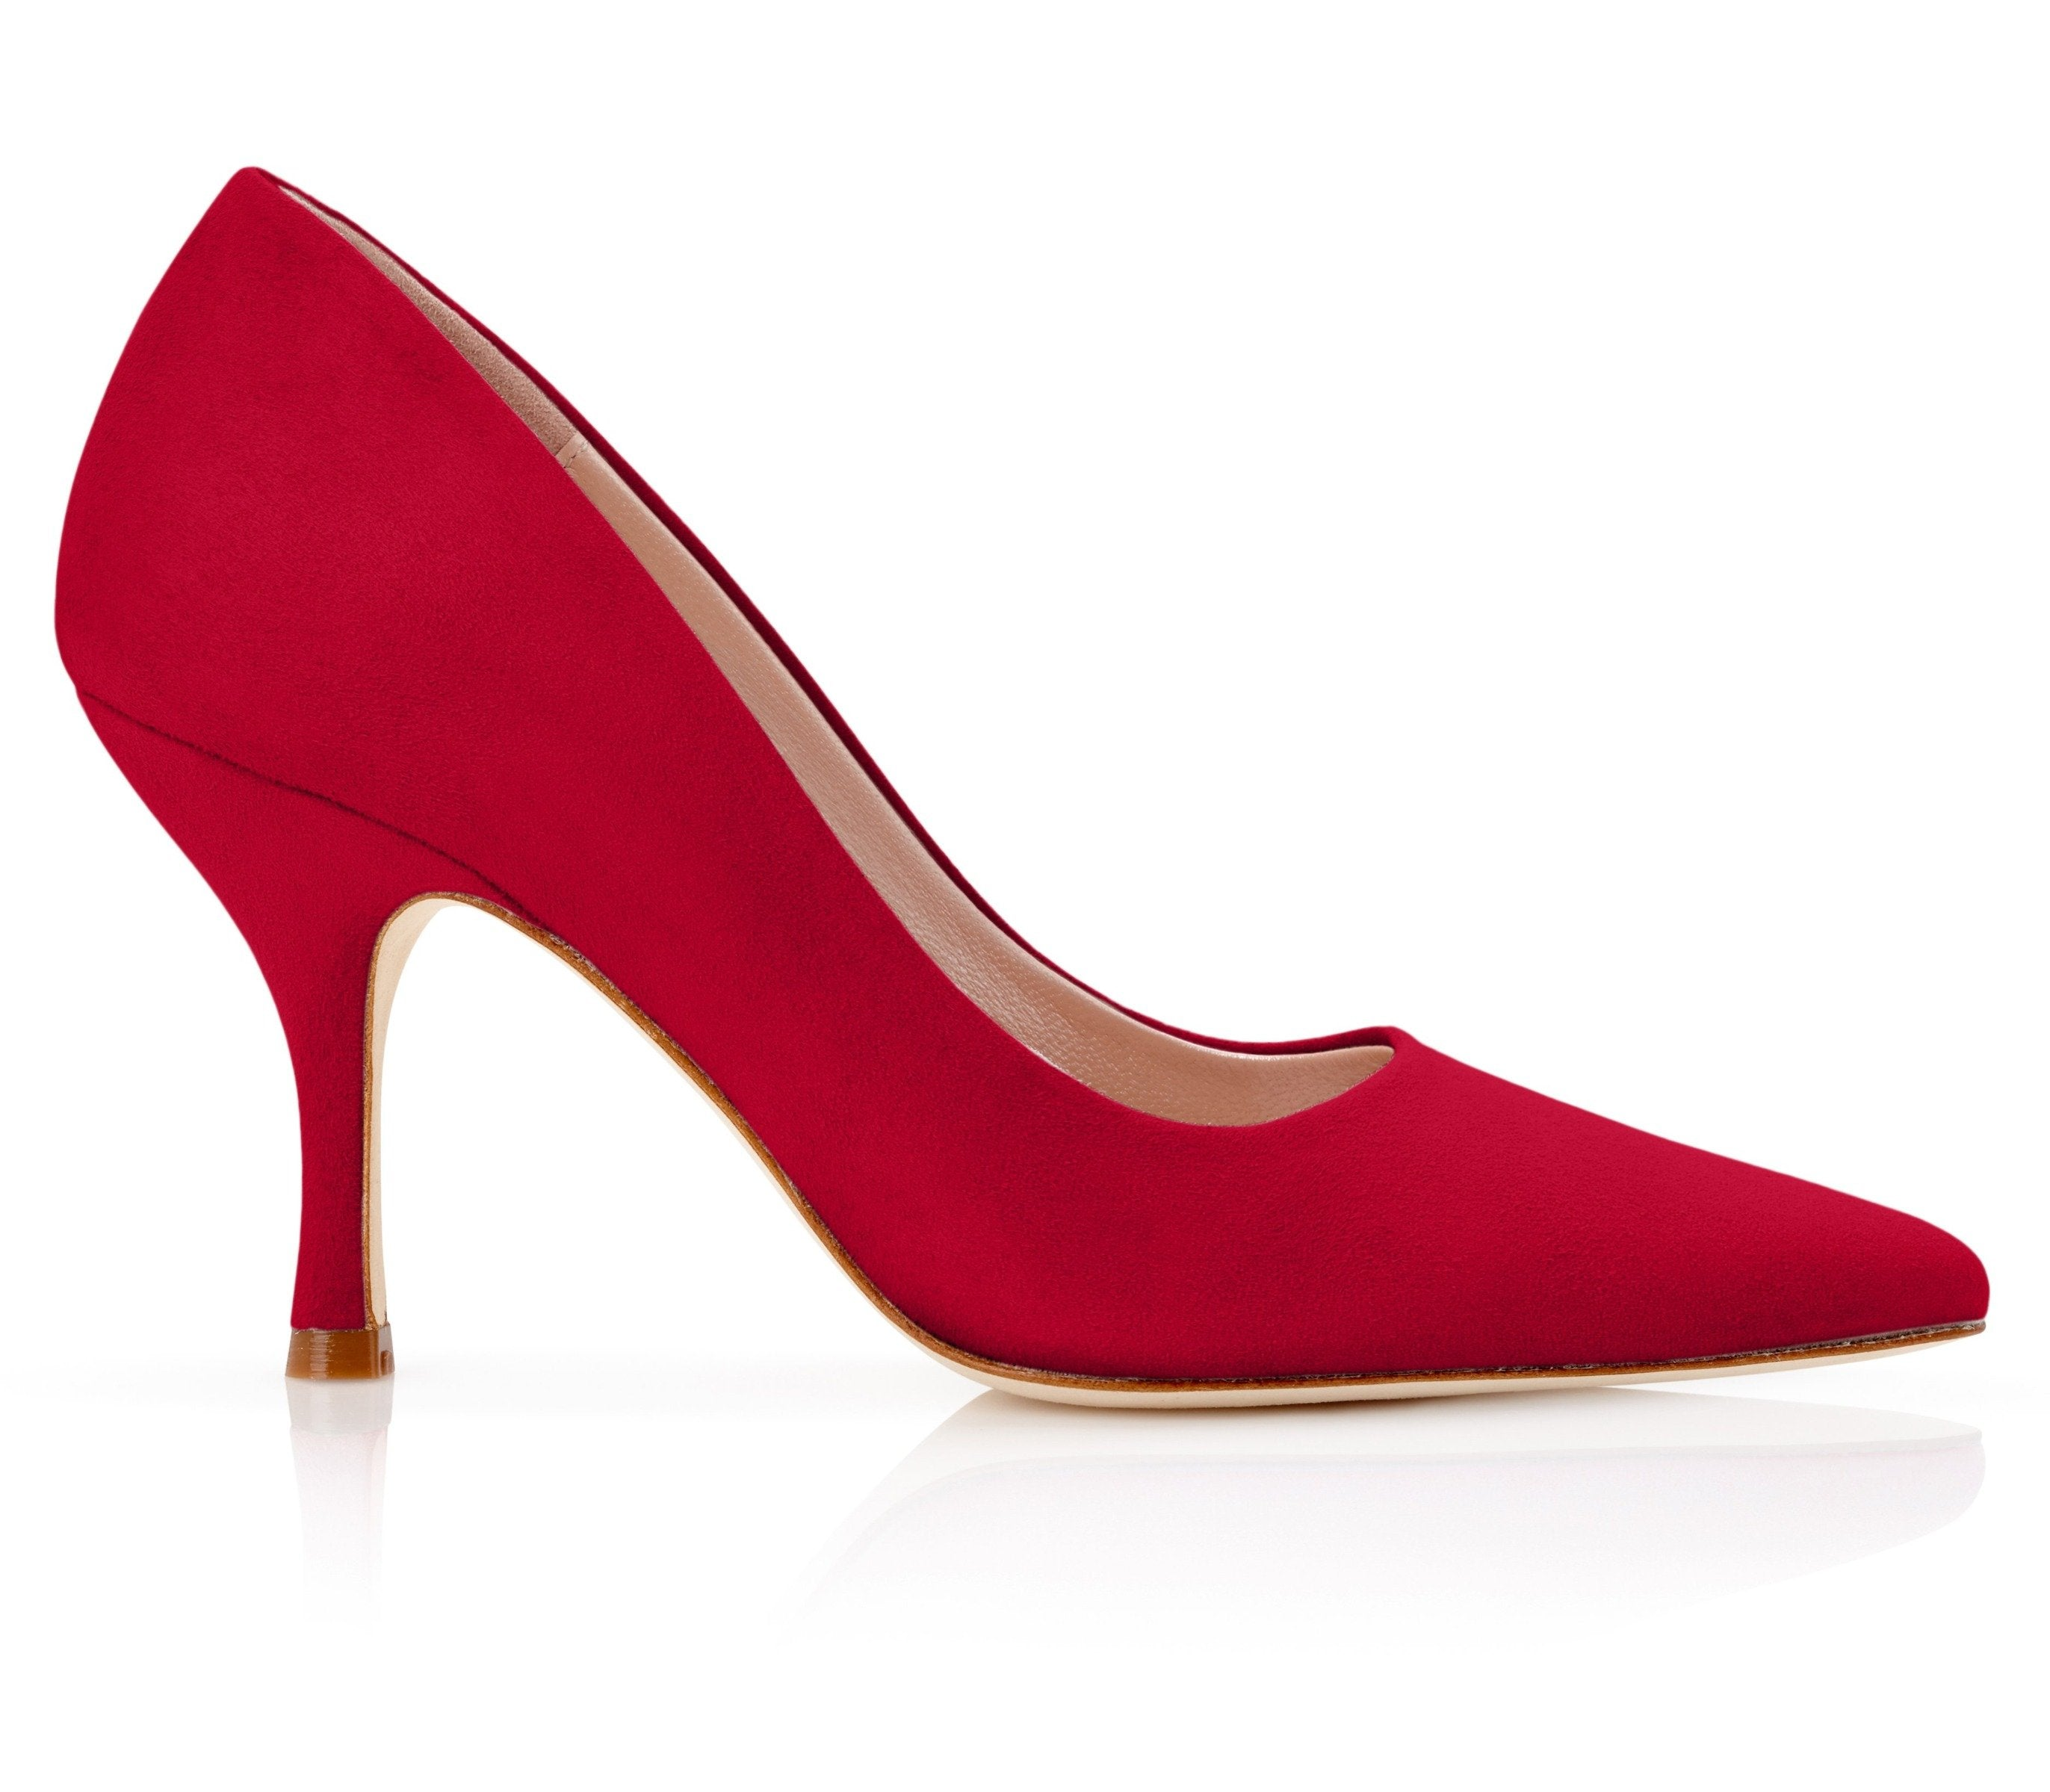 Olivia Lipstick Bright Red Court Shoes By Emmy London